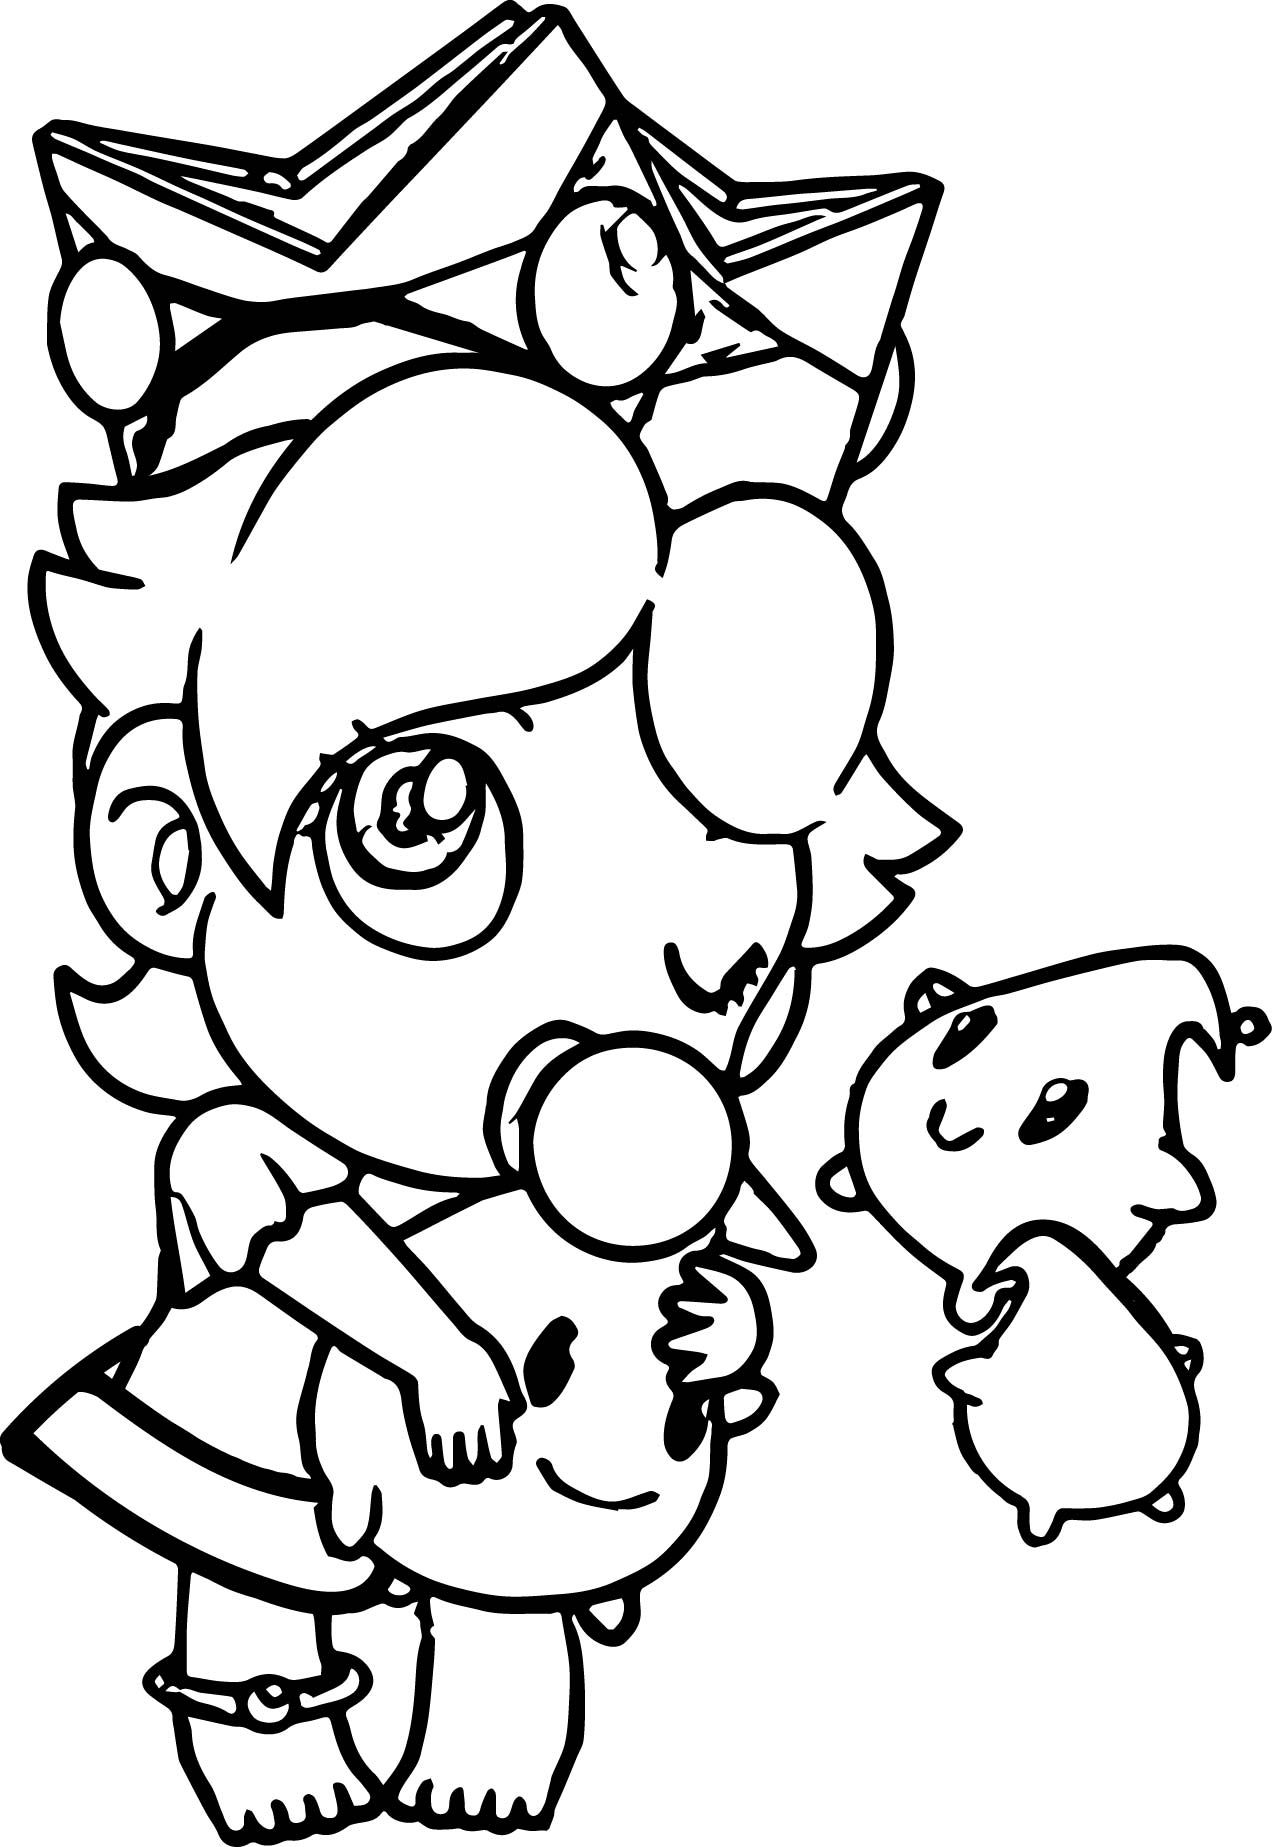 Baby Rosalina Peach Daisy And Rosalina As Babies Coloring Page